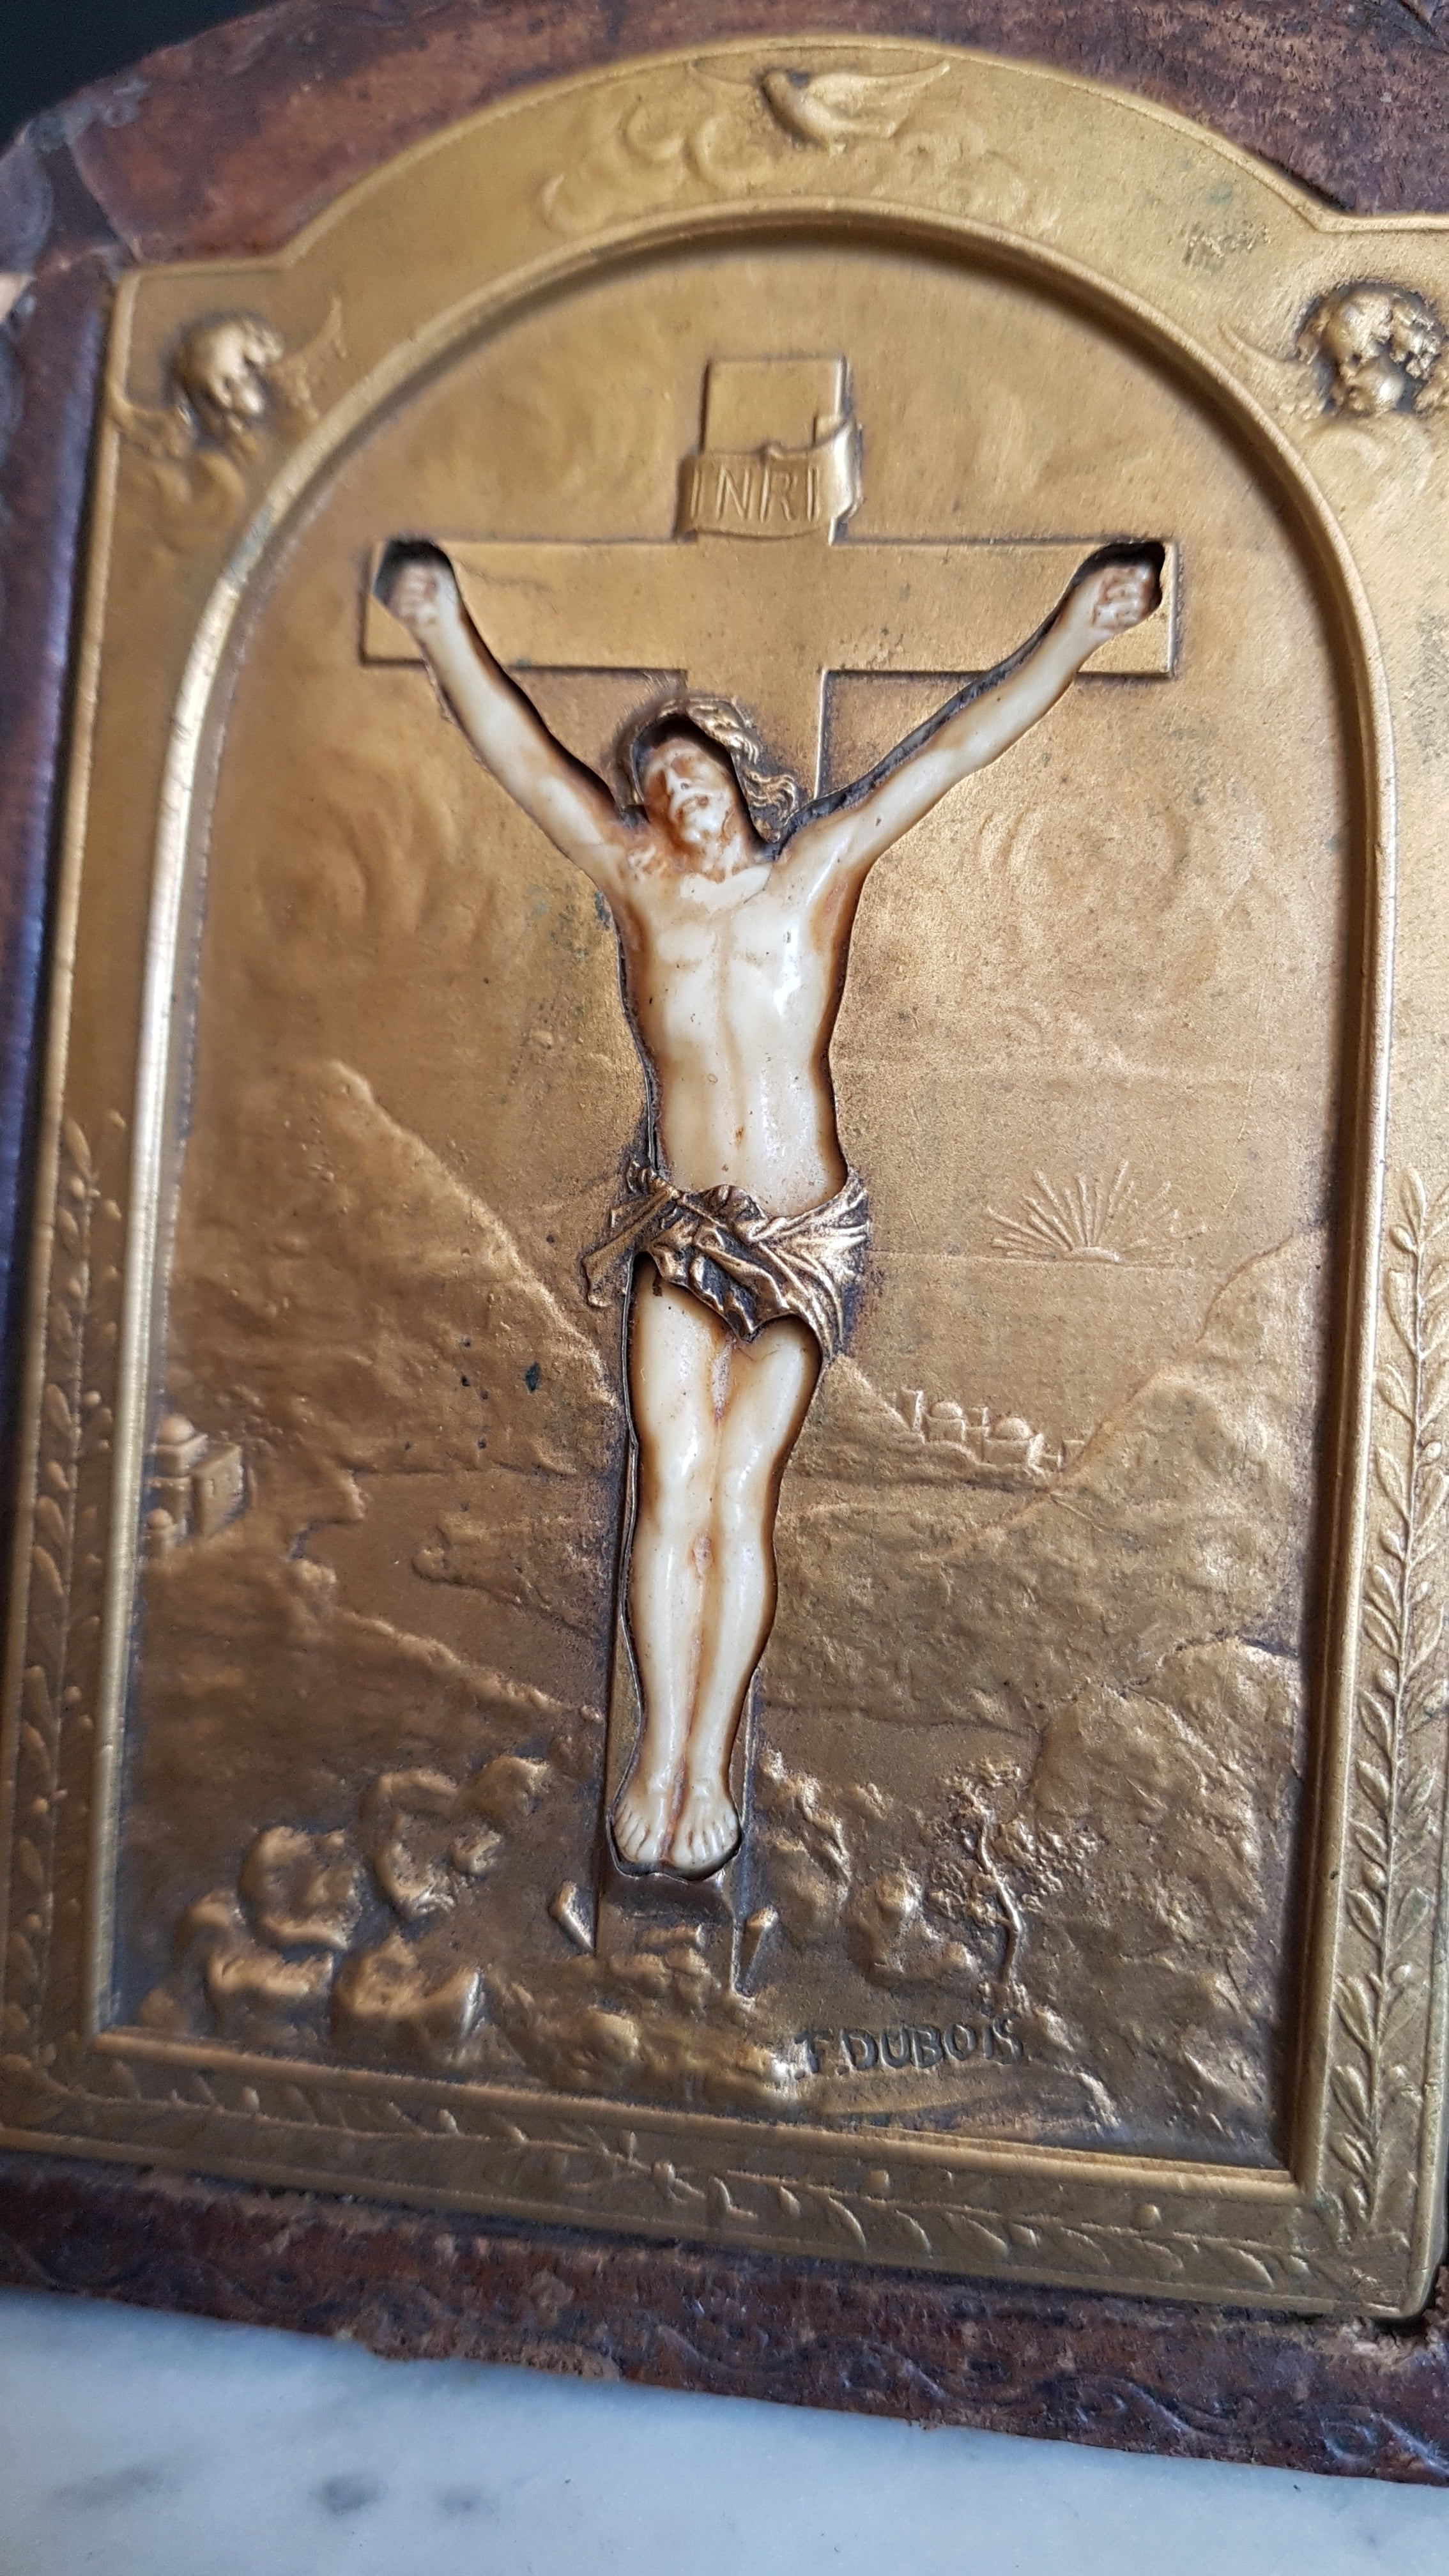 French antique crucifixion reliquary desk frame. Signed F. Dubois